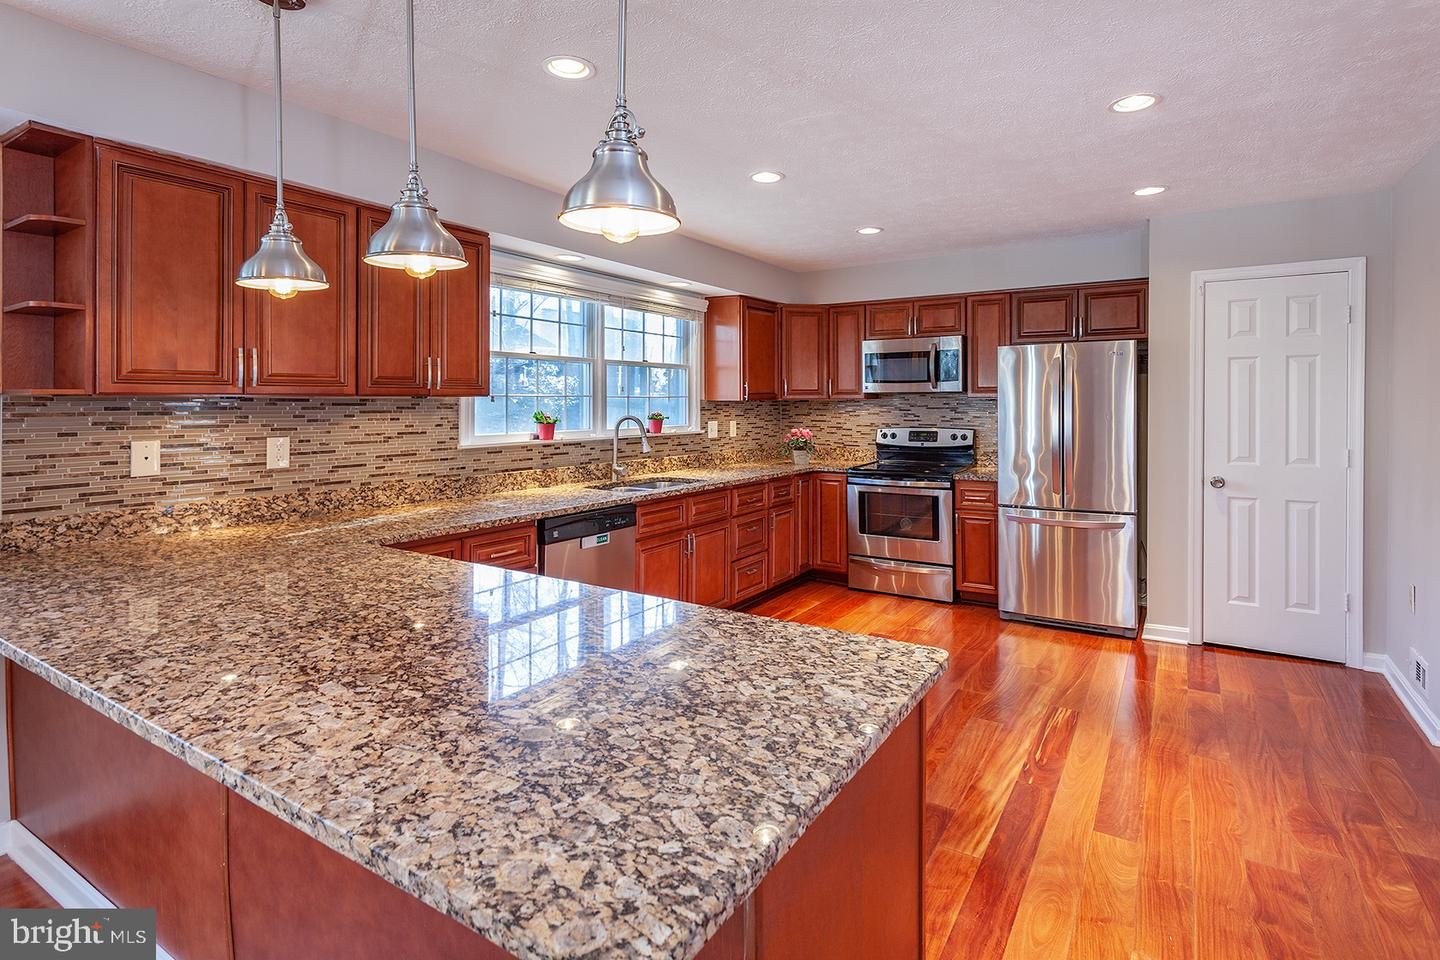 Additional photo for property listing at 907 Barker Hill Rd 907 Barker Hill Rd Herndon, Virginia 20170 United States